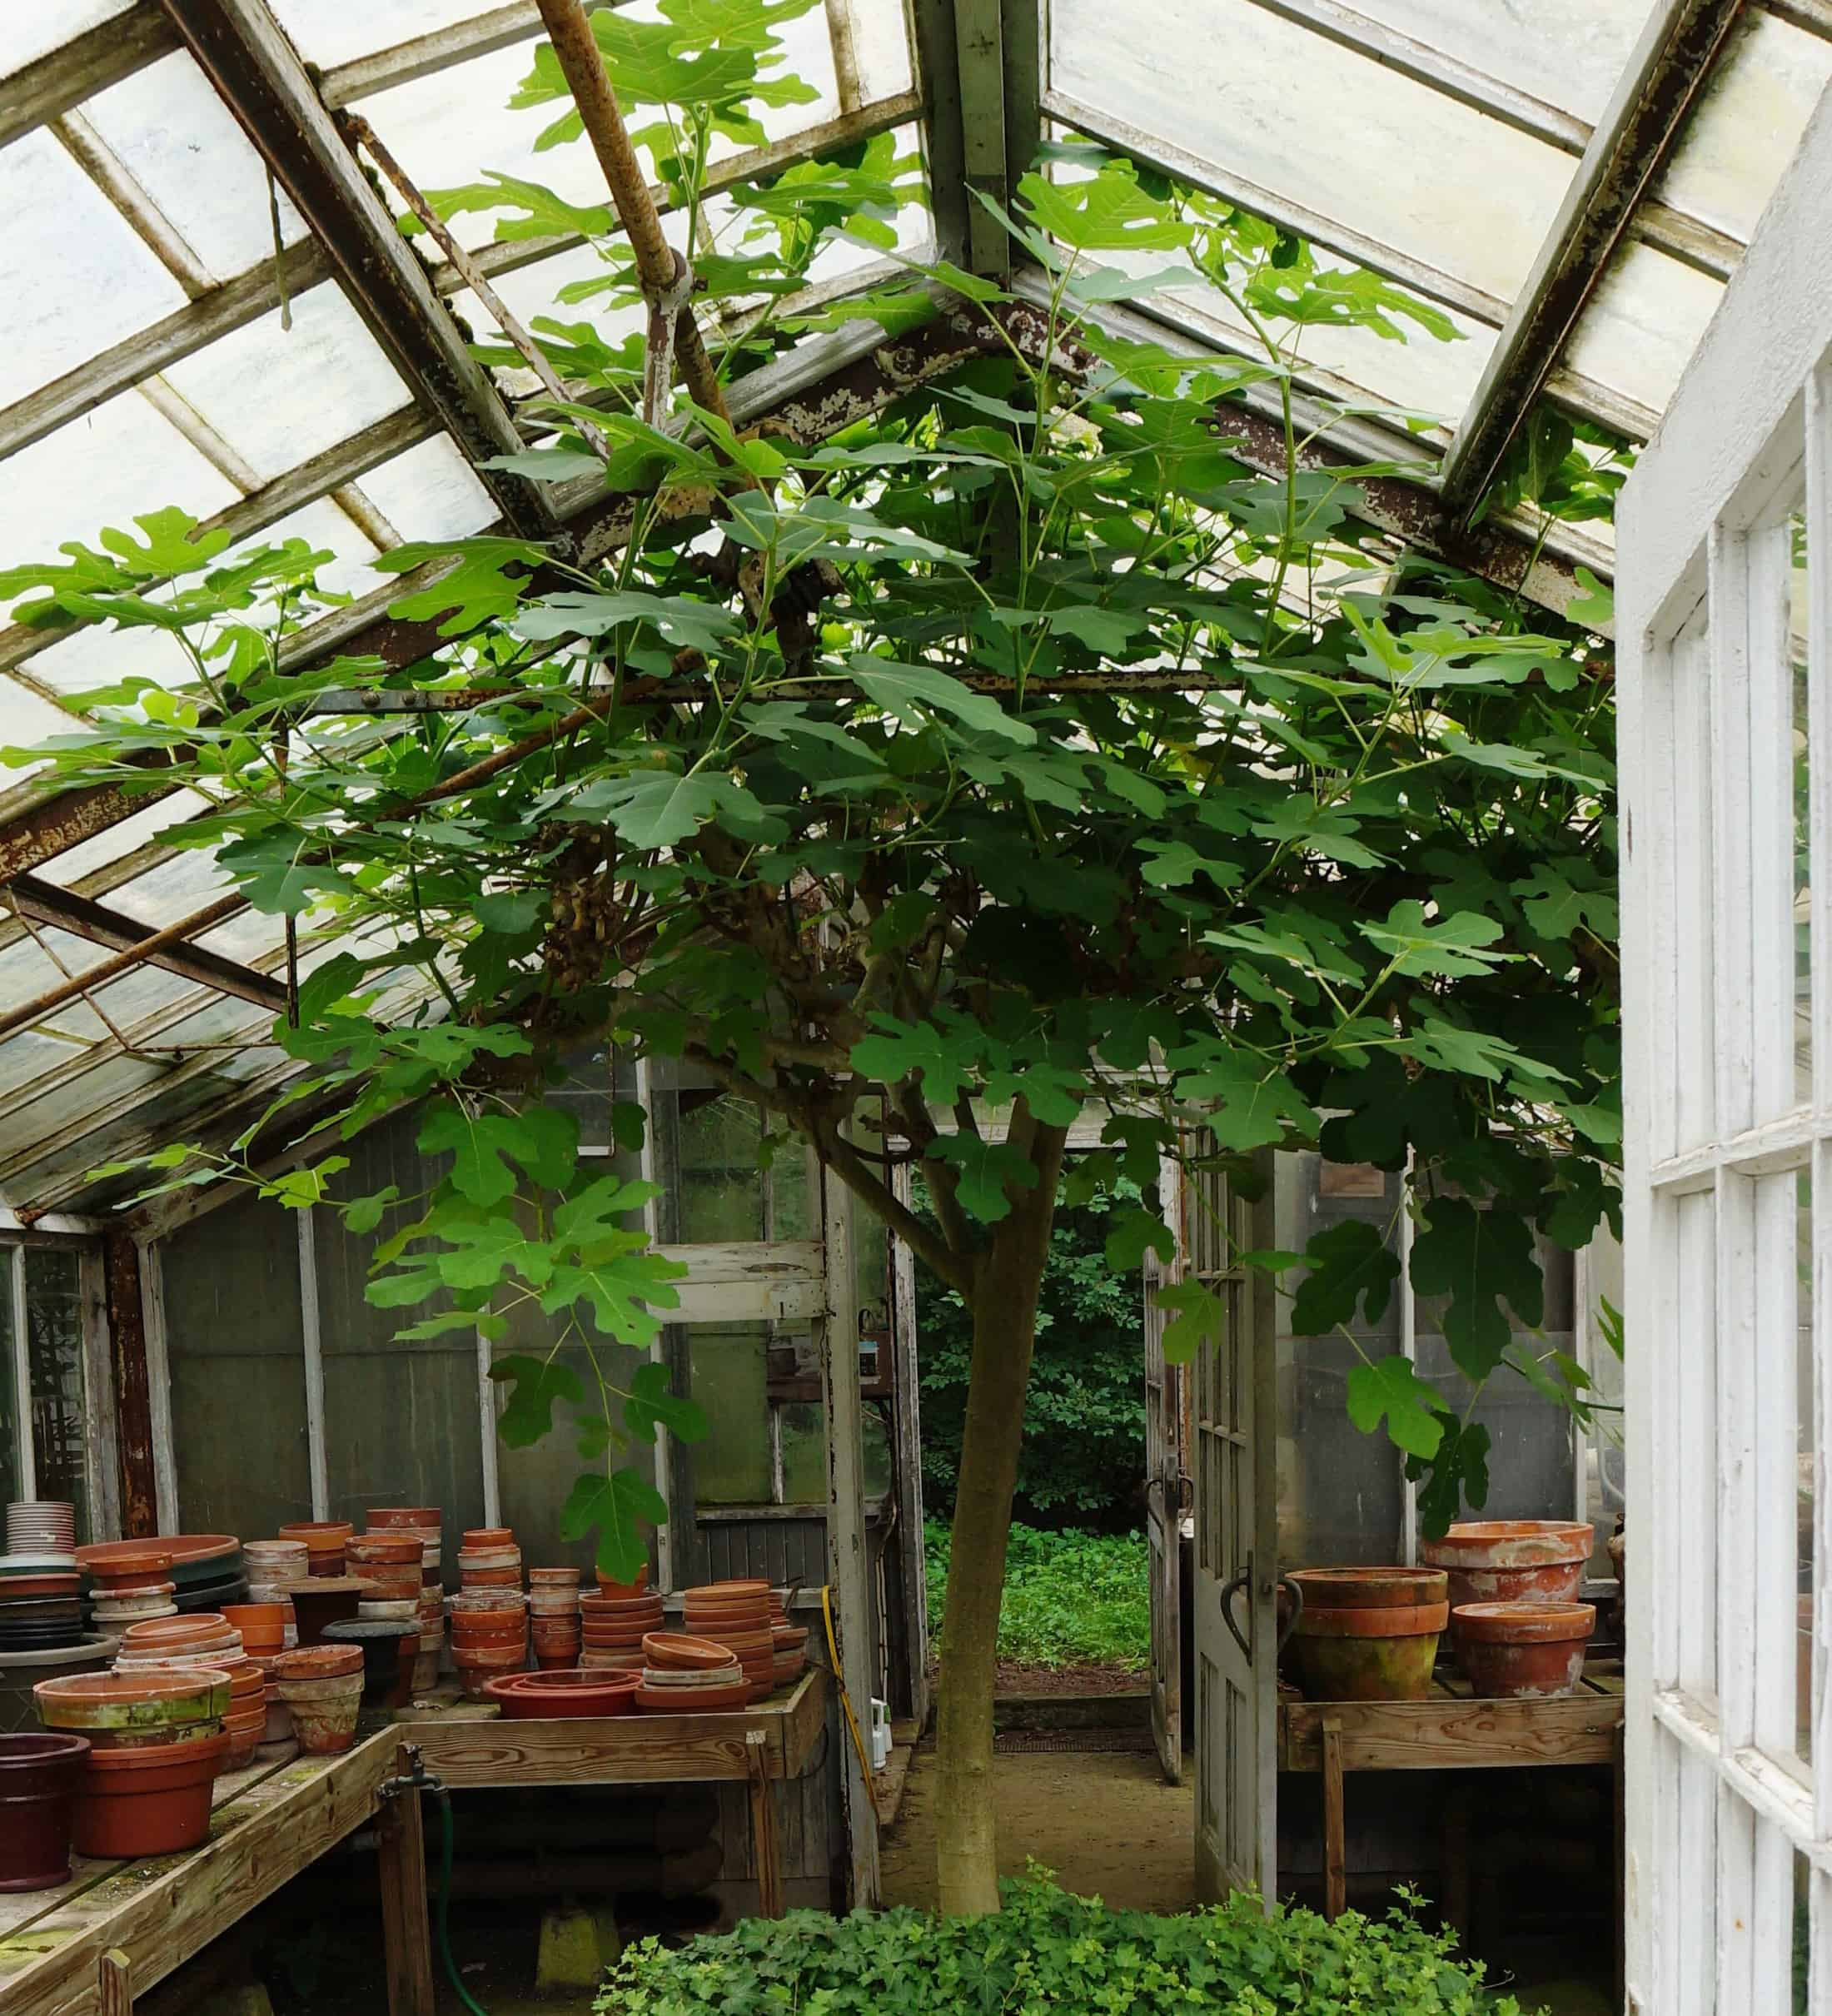 ©2014 Shelley S. Cramm An old fig tree in a private garden greenhouse in Pittsburgh, PA. Don't let your northern climate keep you from cultivating delicious figs!